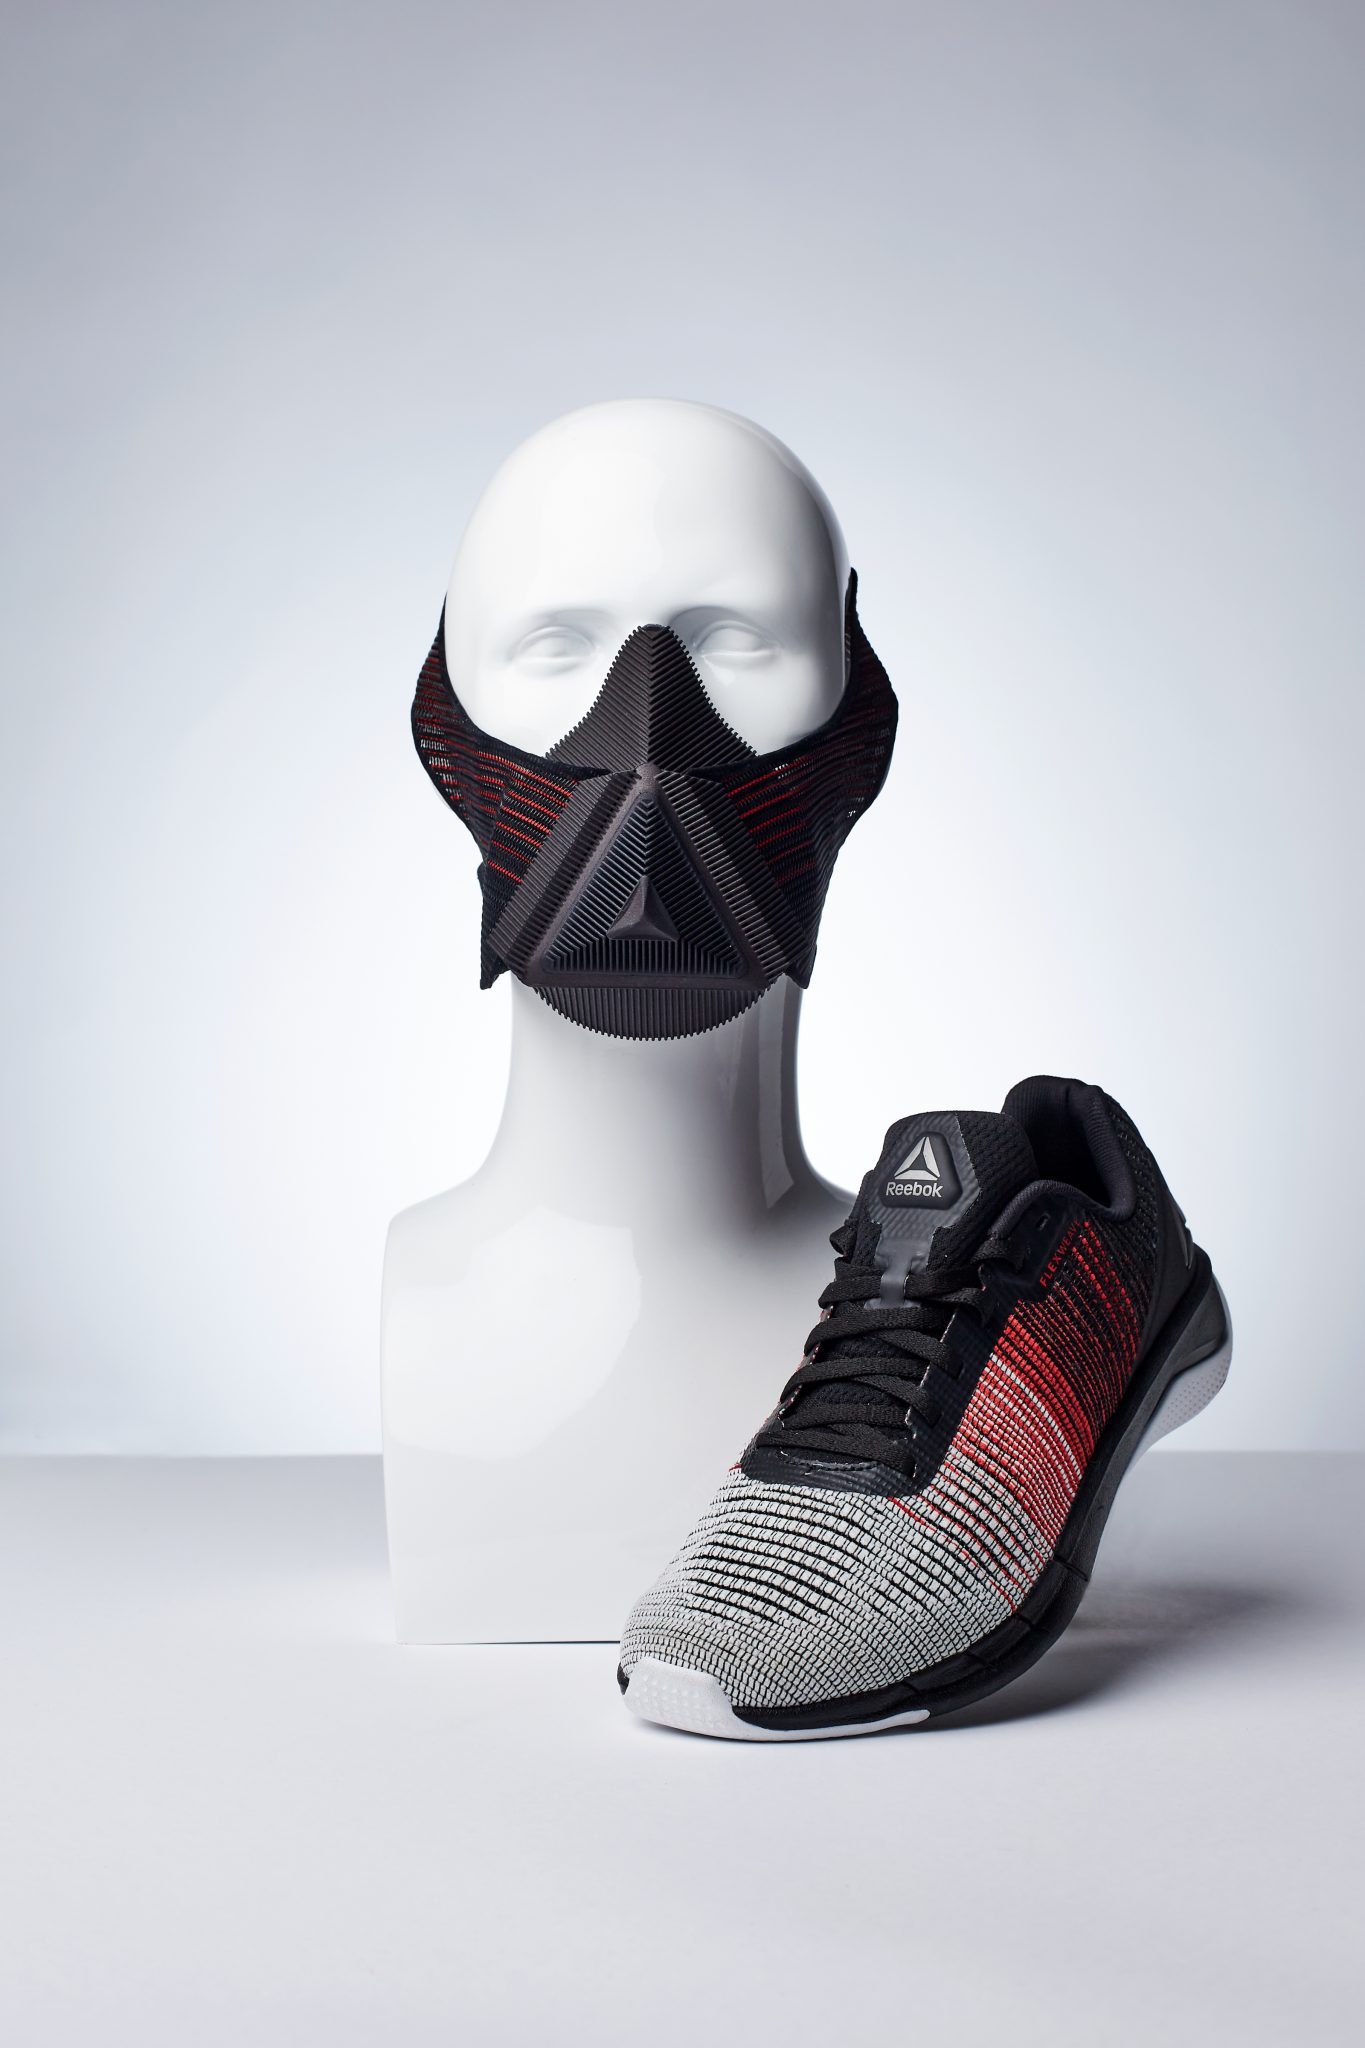 Interview Modla X Reebok 3d Printed Athlete S Mask 3d